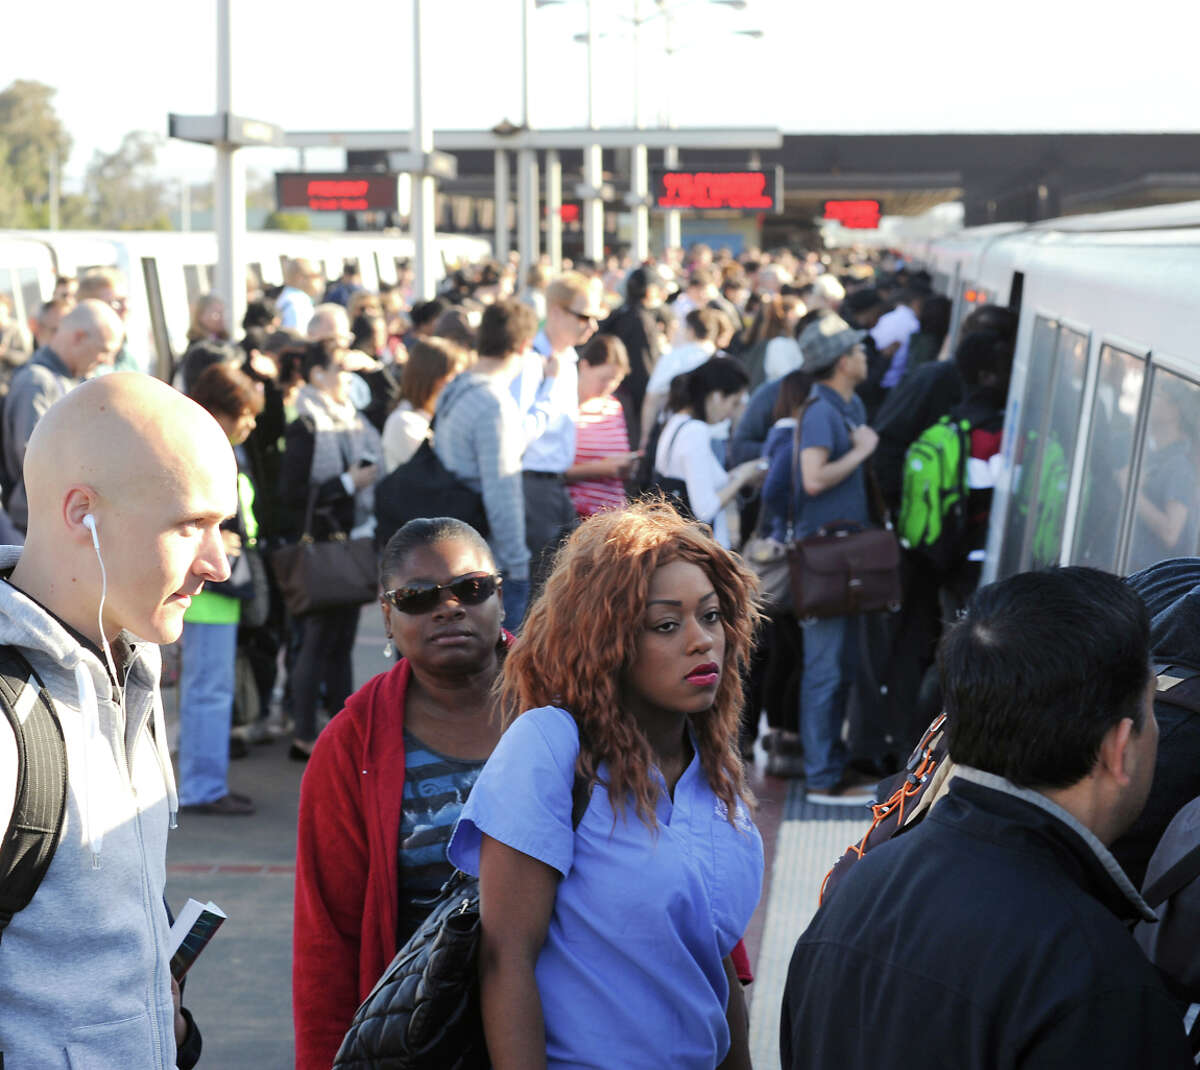 Commuters crowd S.F.-bound BART trains at MacArthur Station in Oakland. A second Transbay Tube through the heart of San Francisco could help riders.